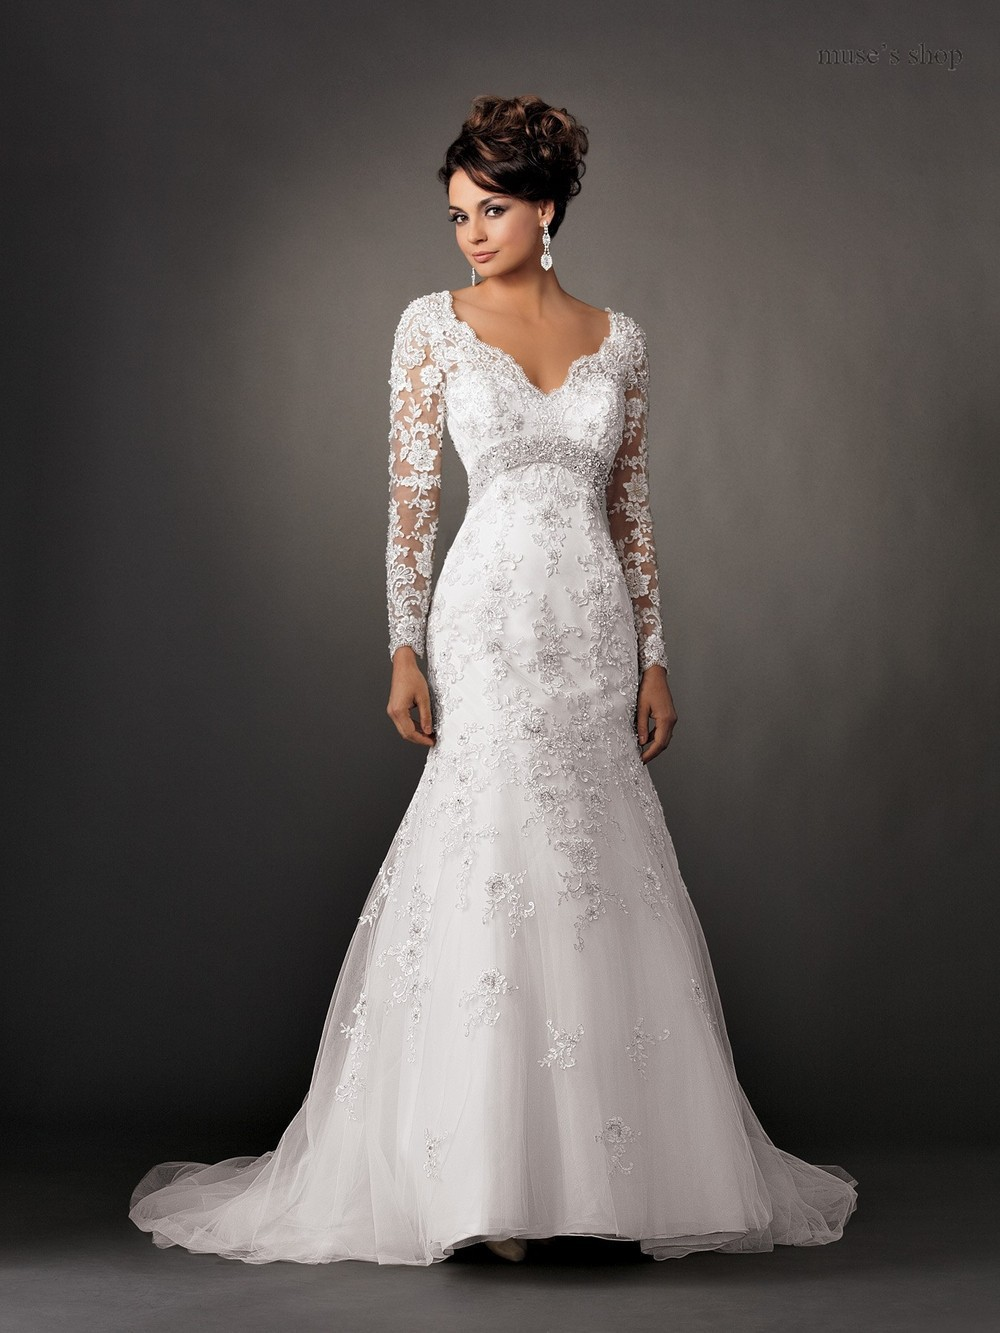 V neck vintage long sleeve lace wedding dresses backless for Long sleeve white lace wedding dress